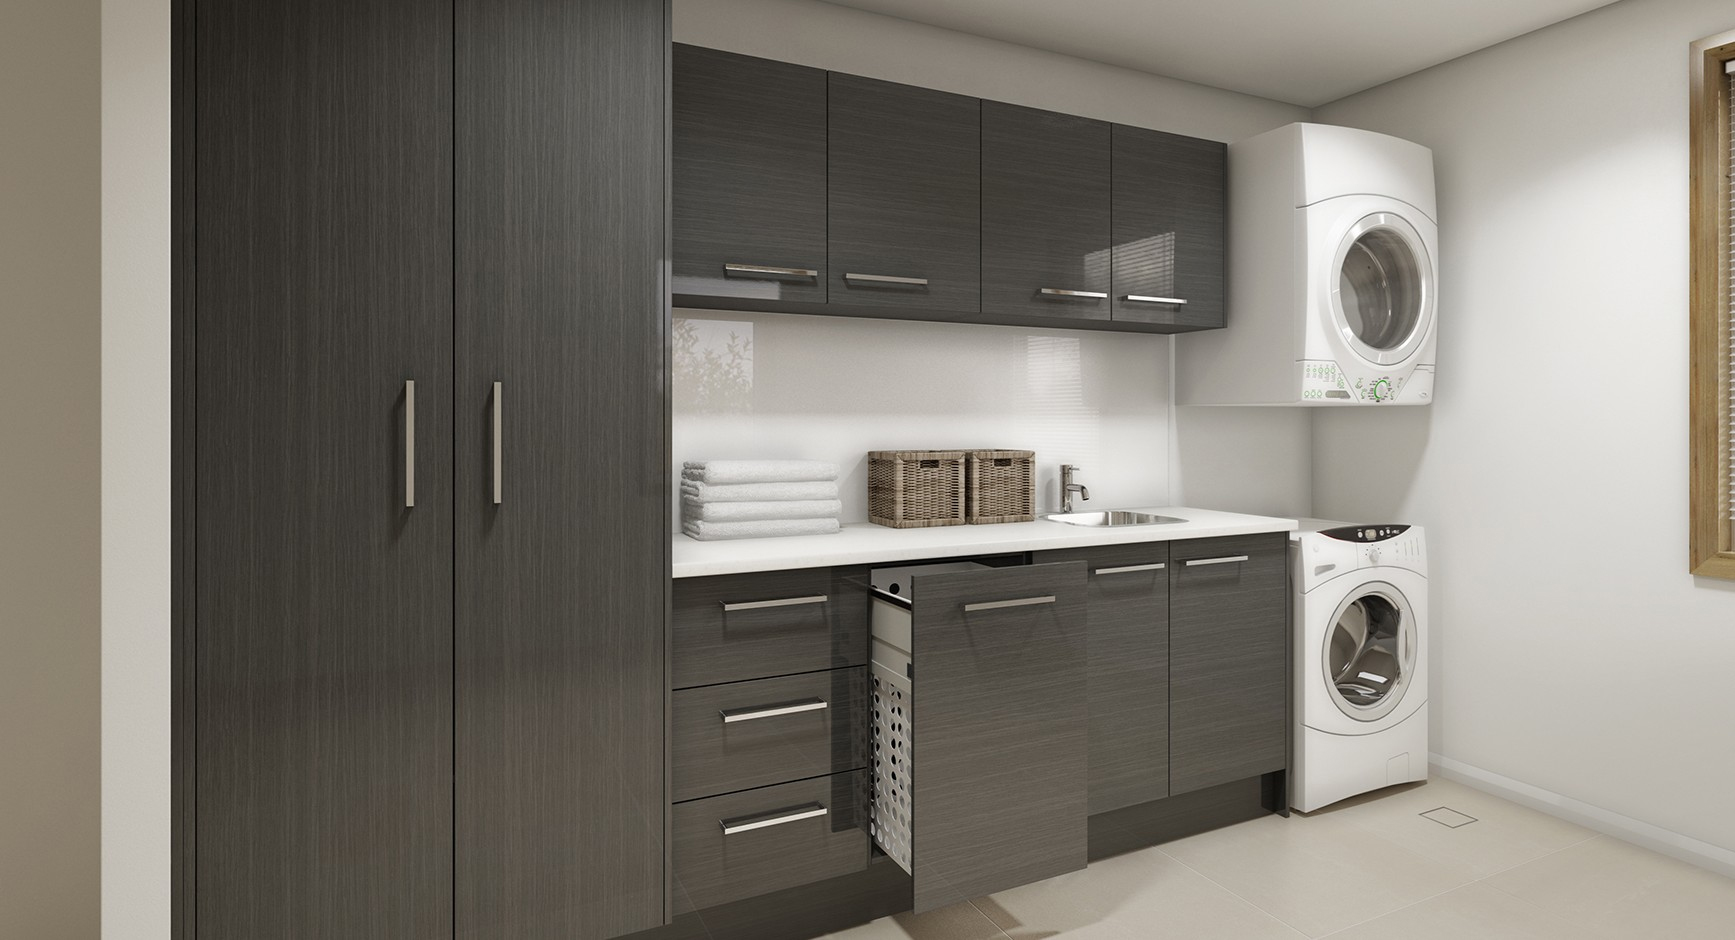 Laundry Room Cupboards